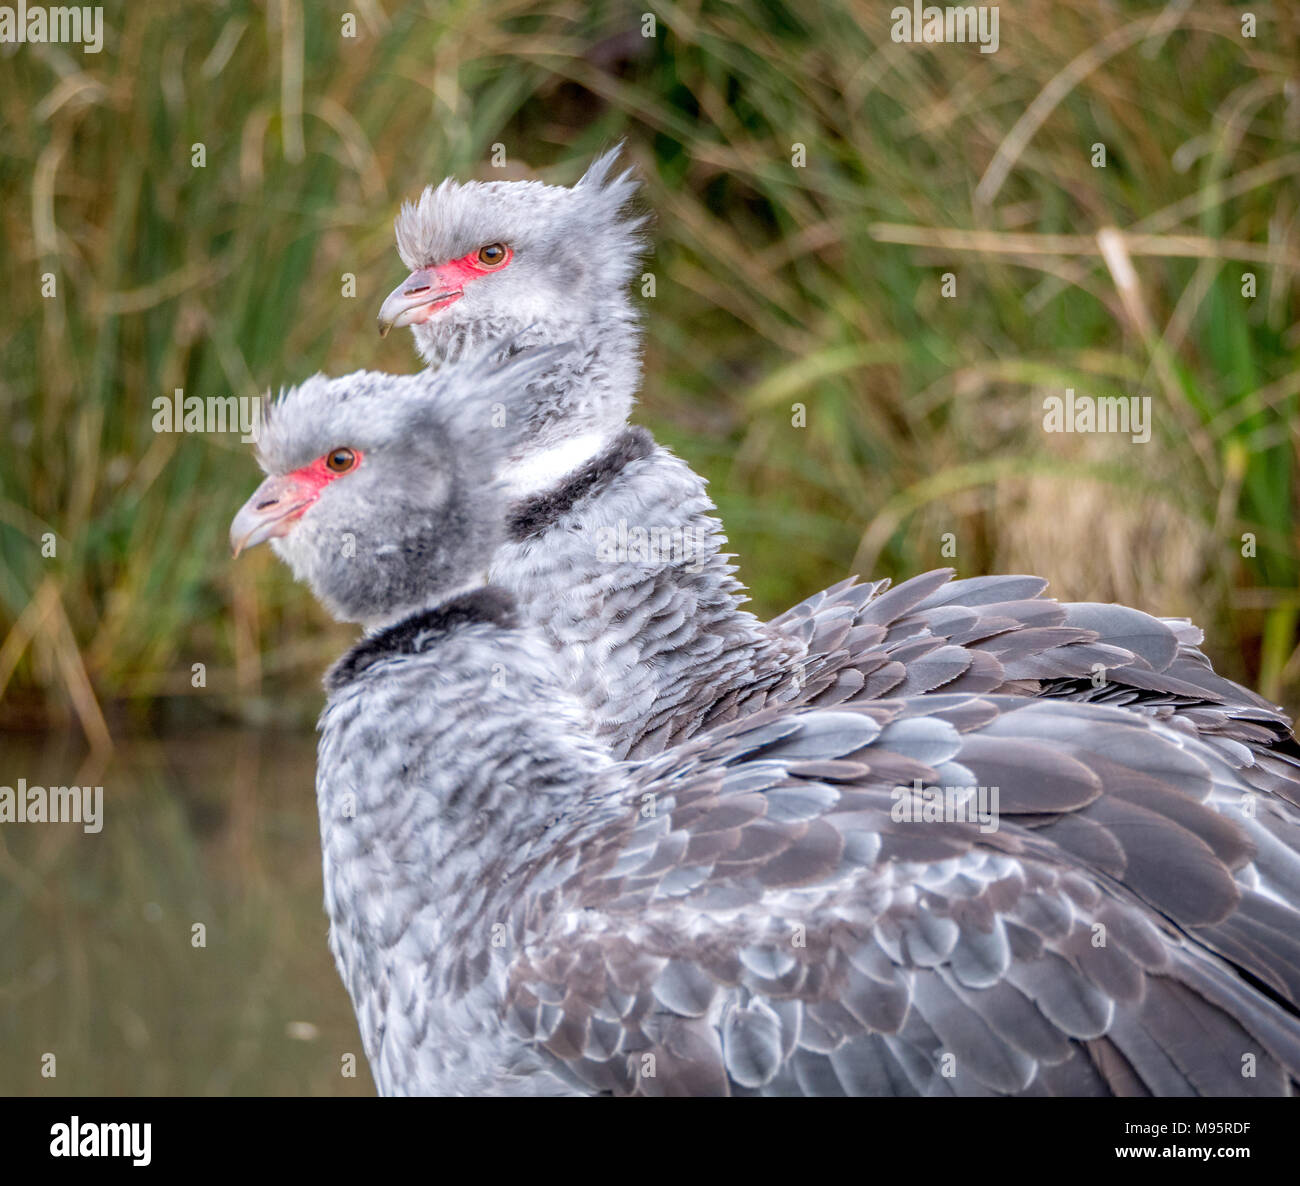 Pair of crested or southern screamers Chauna torquata closely mirroring each other's body language at Slimbridge Gloucestershire UK - Stock Image